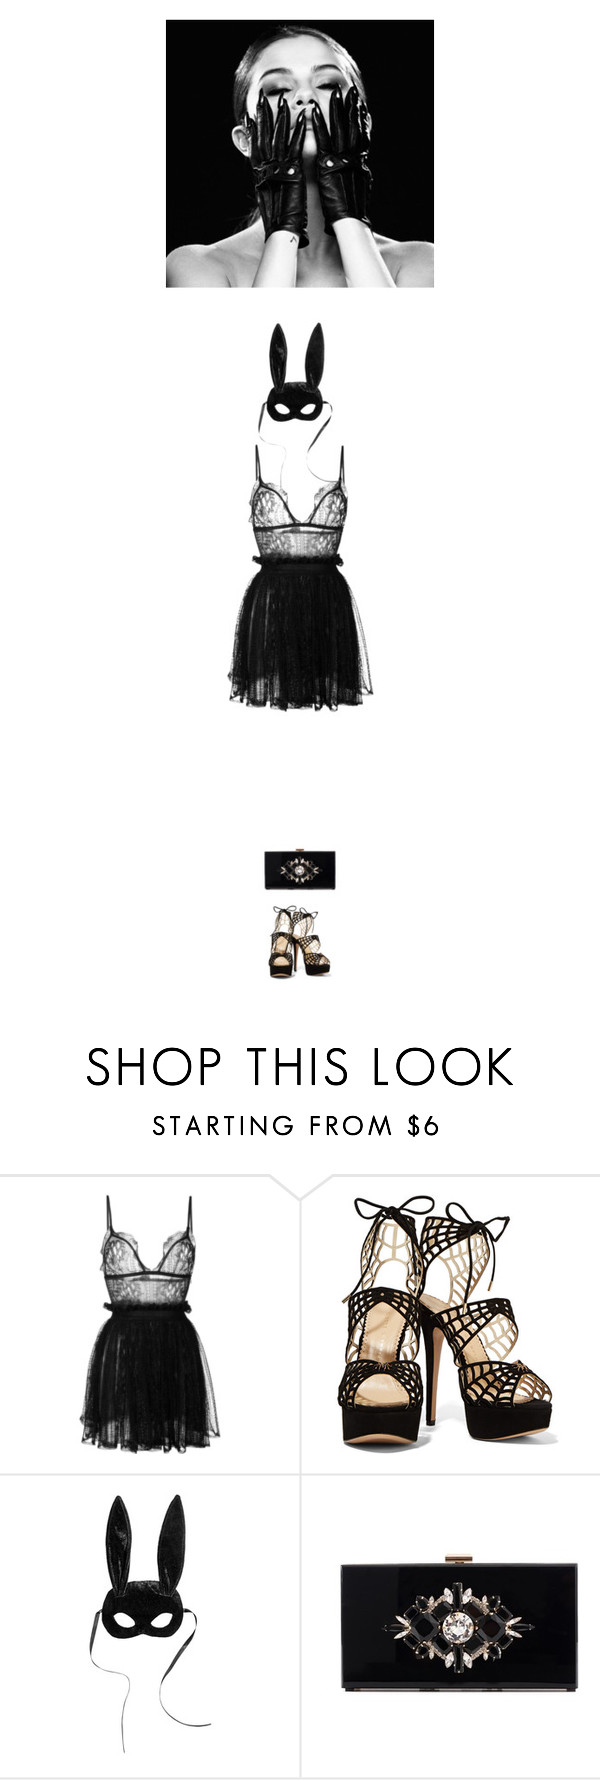 """""""SM8 Nº7 All Hallows Eve"""" by just-lala ❤ liked on Polyvore featuring Alexander McQueen and Noir"""